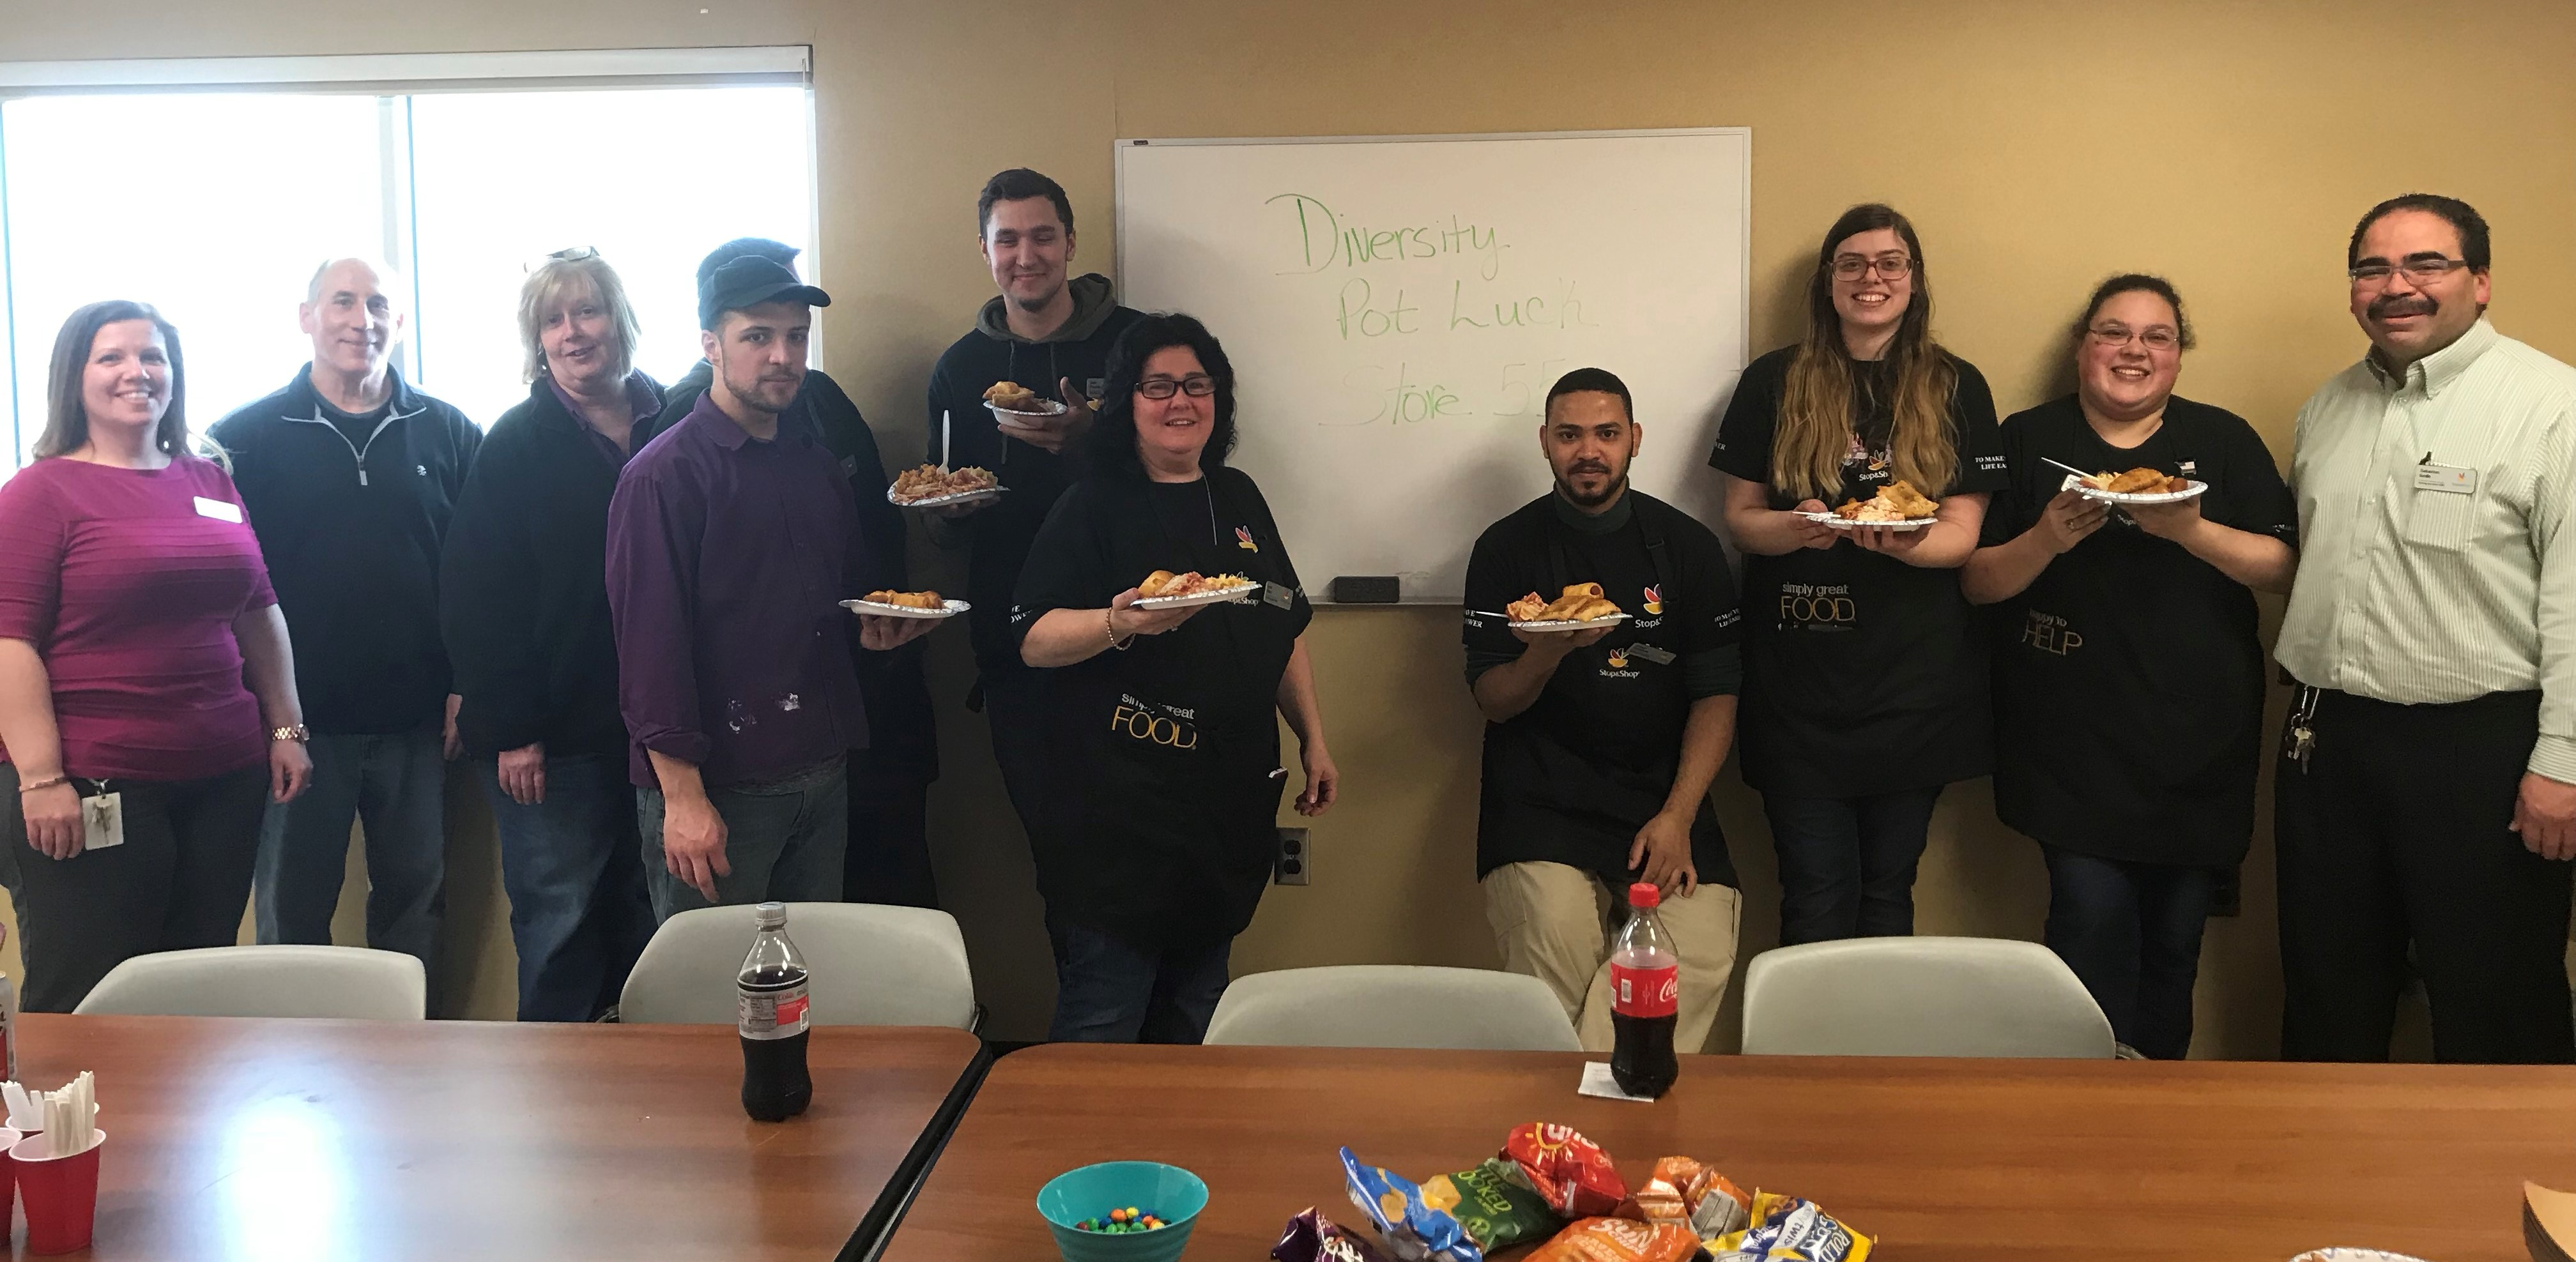 """Today Store 55 Celebrated Diversity With """"pot Luck From Around The World."""" Associates Made Entrees From Their Ethnic Backgrounds, Giving Them The Opportunity To Talk With Each Other About Their Culture."""